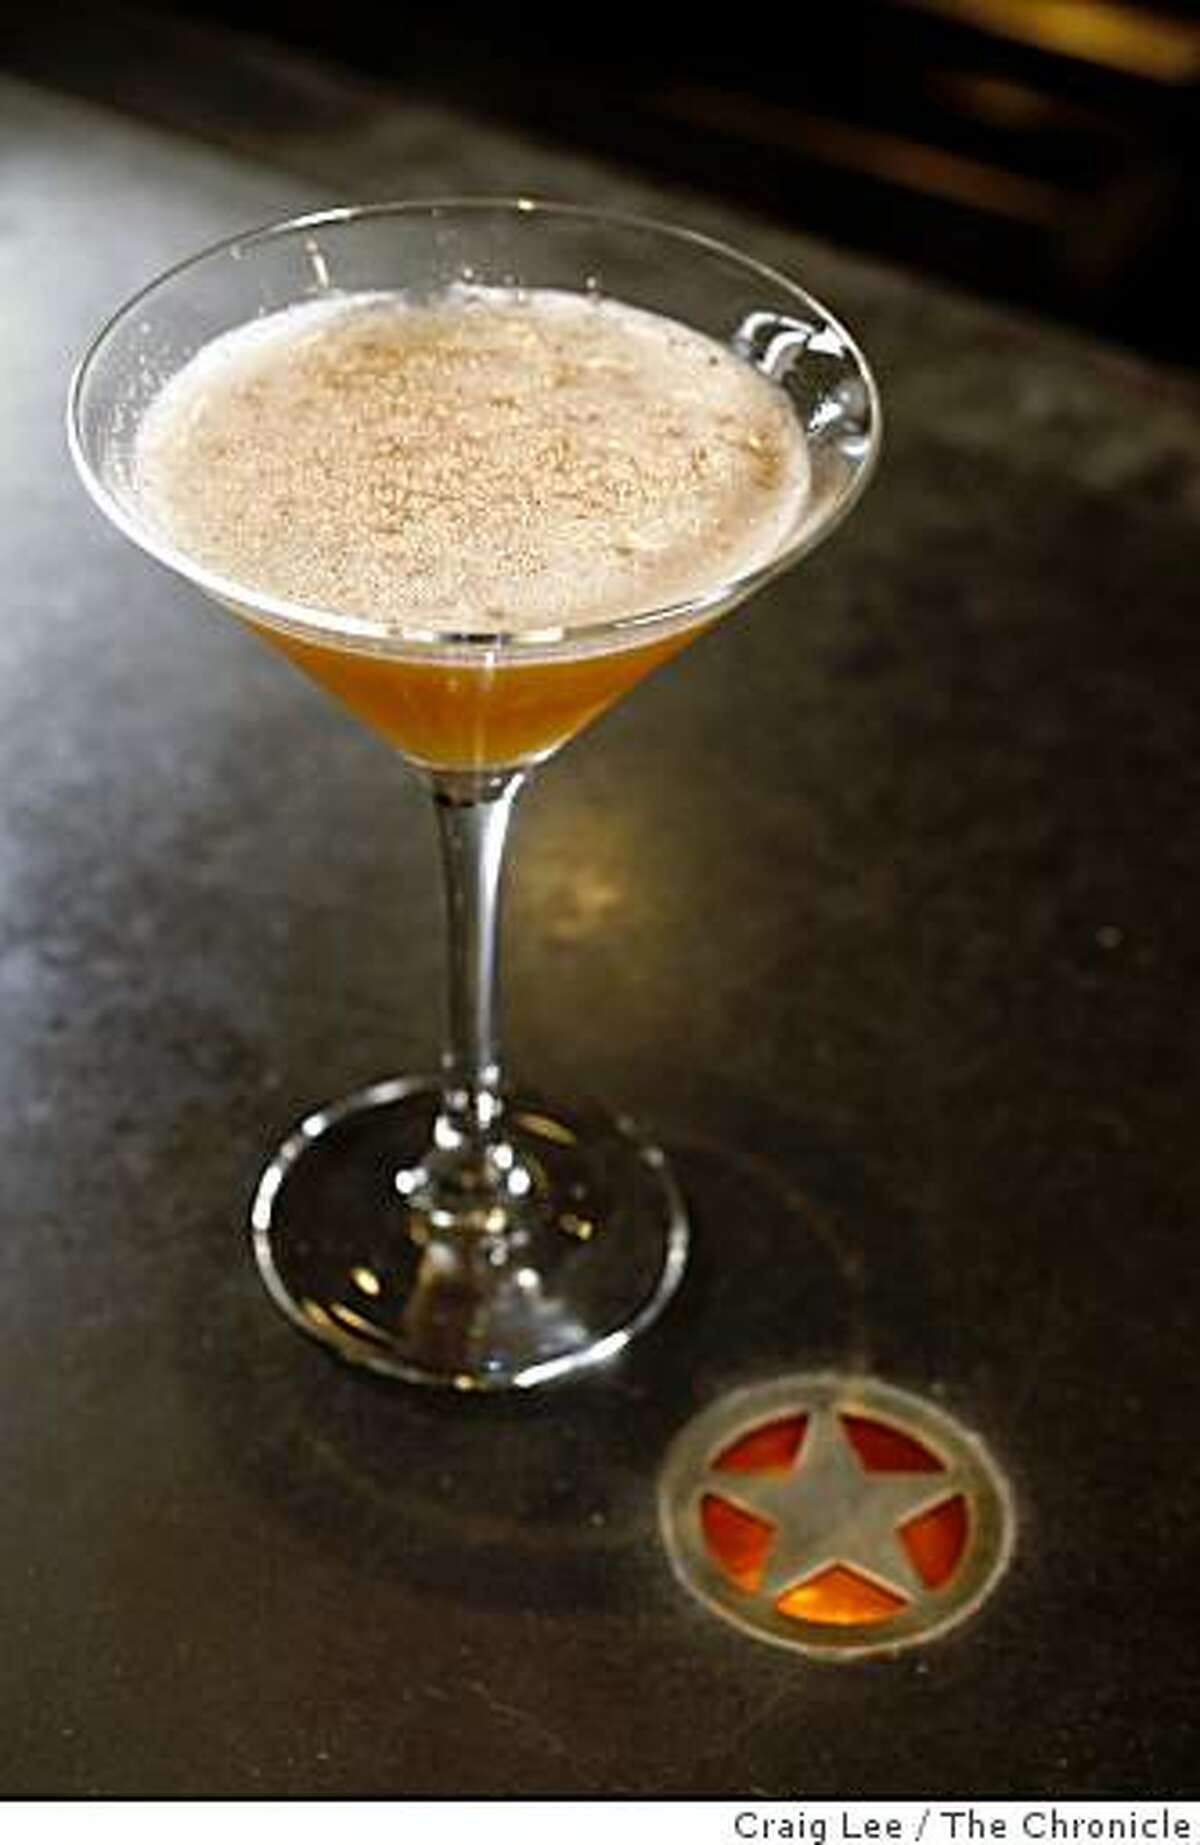 A drink called the Kokomo by Brooke Arthur, bar manager at Range restaurant in San Francisco, Calif., on February 13, 2009.